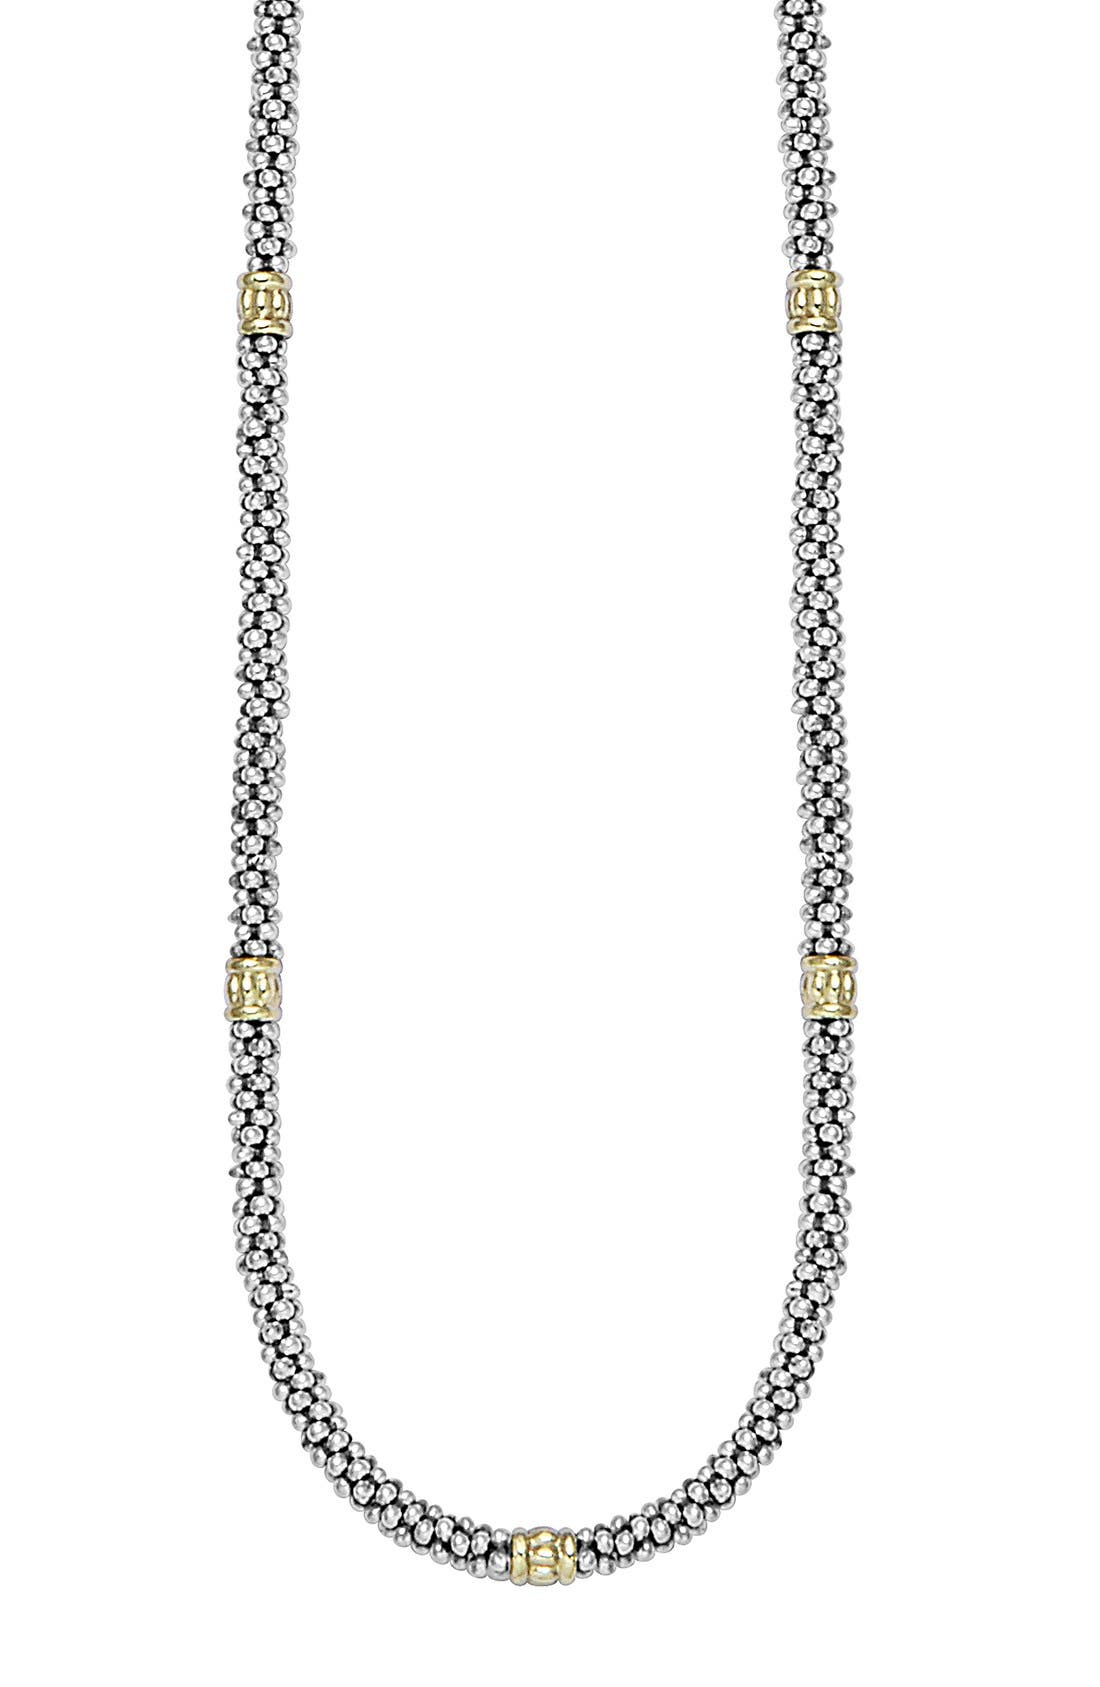 Caviar Rope Necklace,                             Alternate thumbnail 2, color,                             Silver/Gold